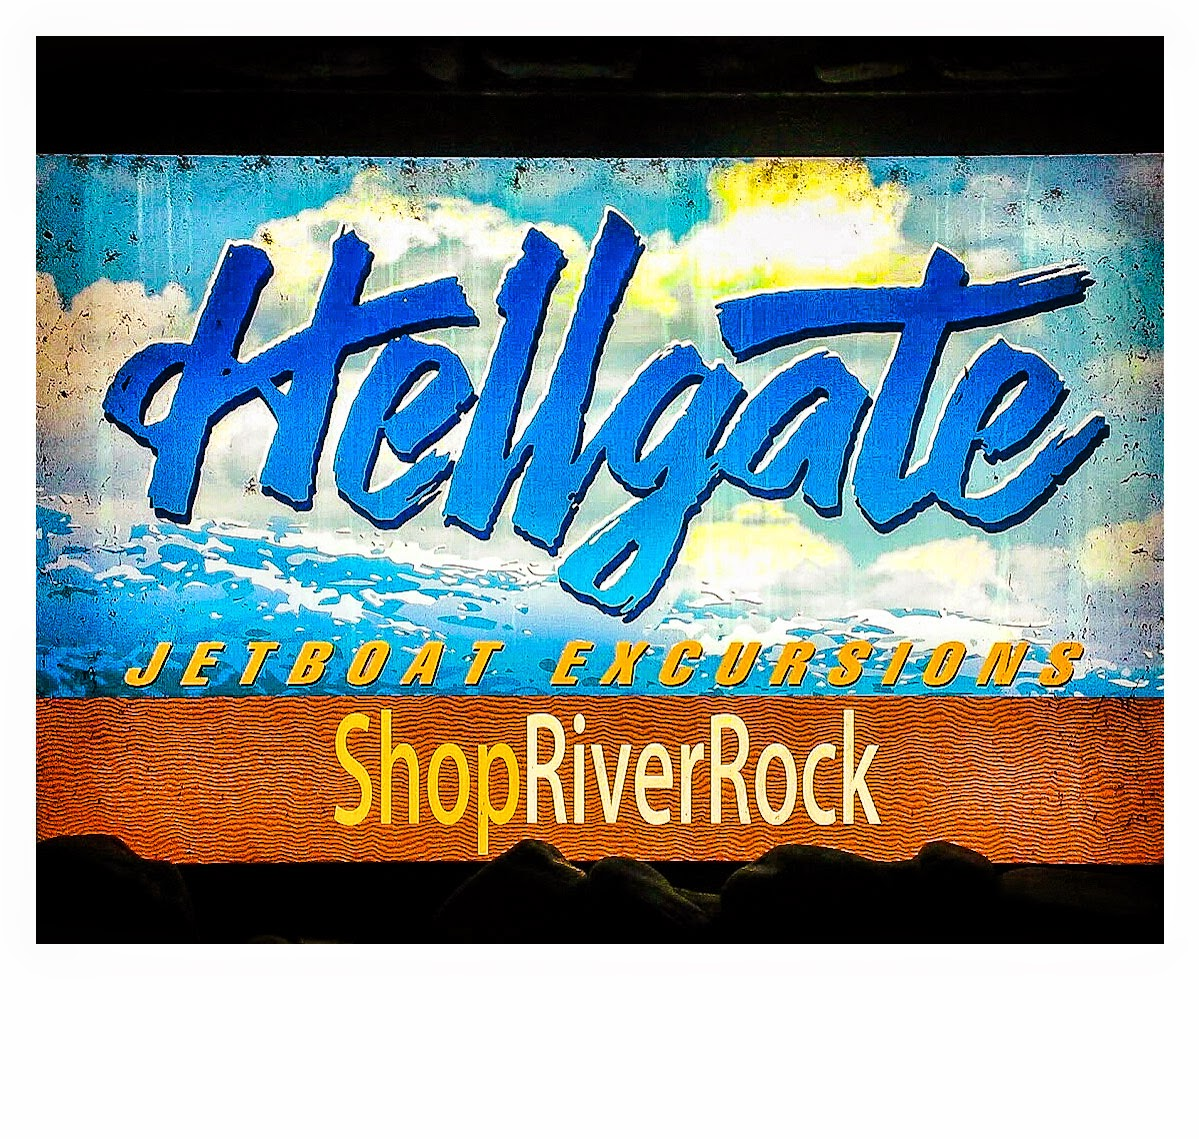 Hellgate Jetboat Excursions / Shop River Rock